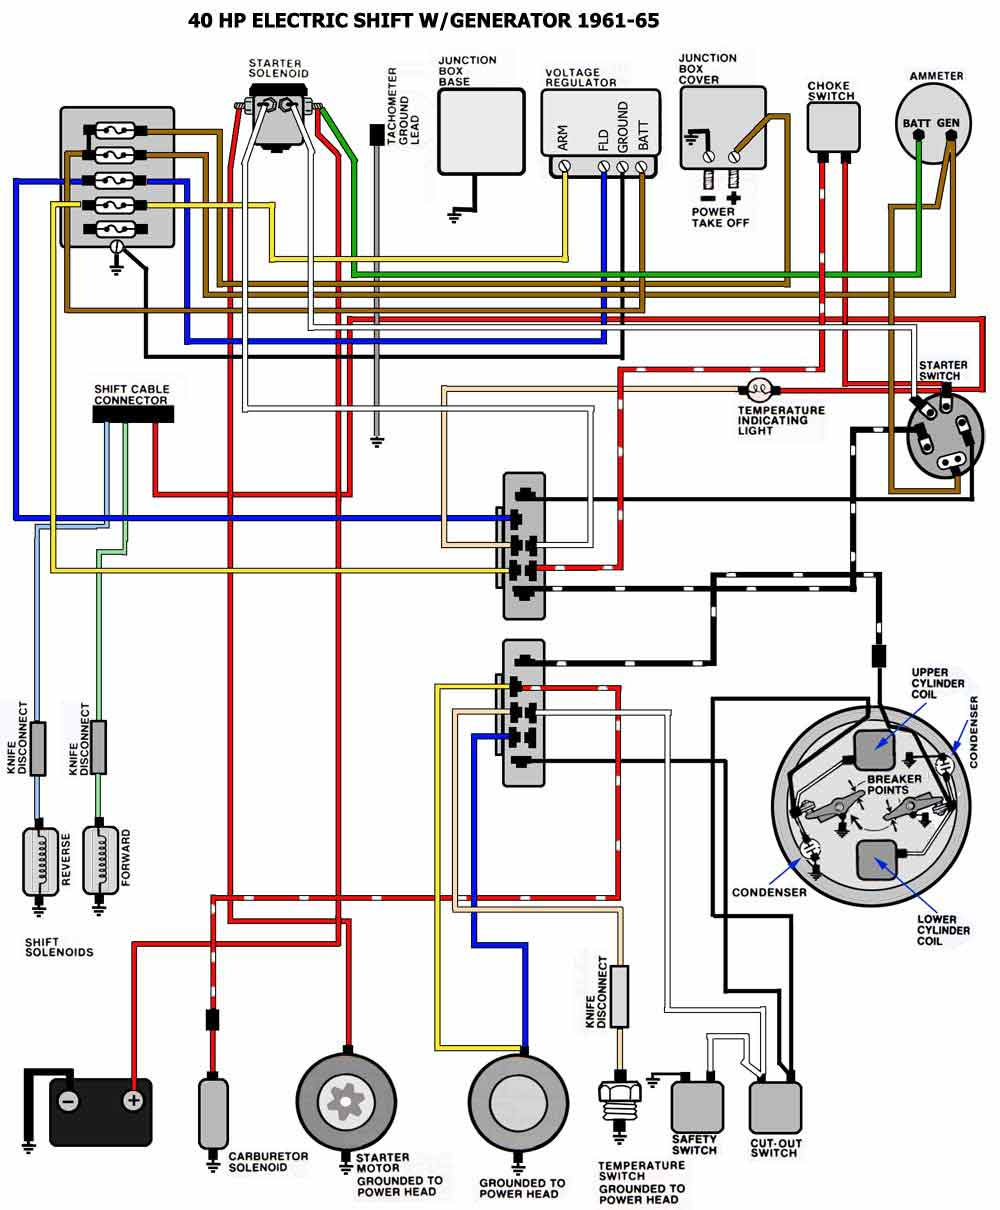 61_66_40HP  Yamaha Outboard Wiring Diagram on tilt trim gauge, parts meters speed, for 6hp, for tachometer, f25tlry,